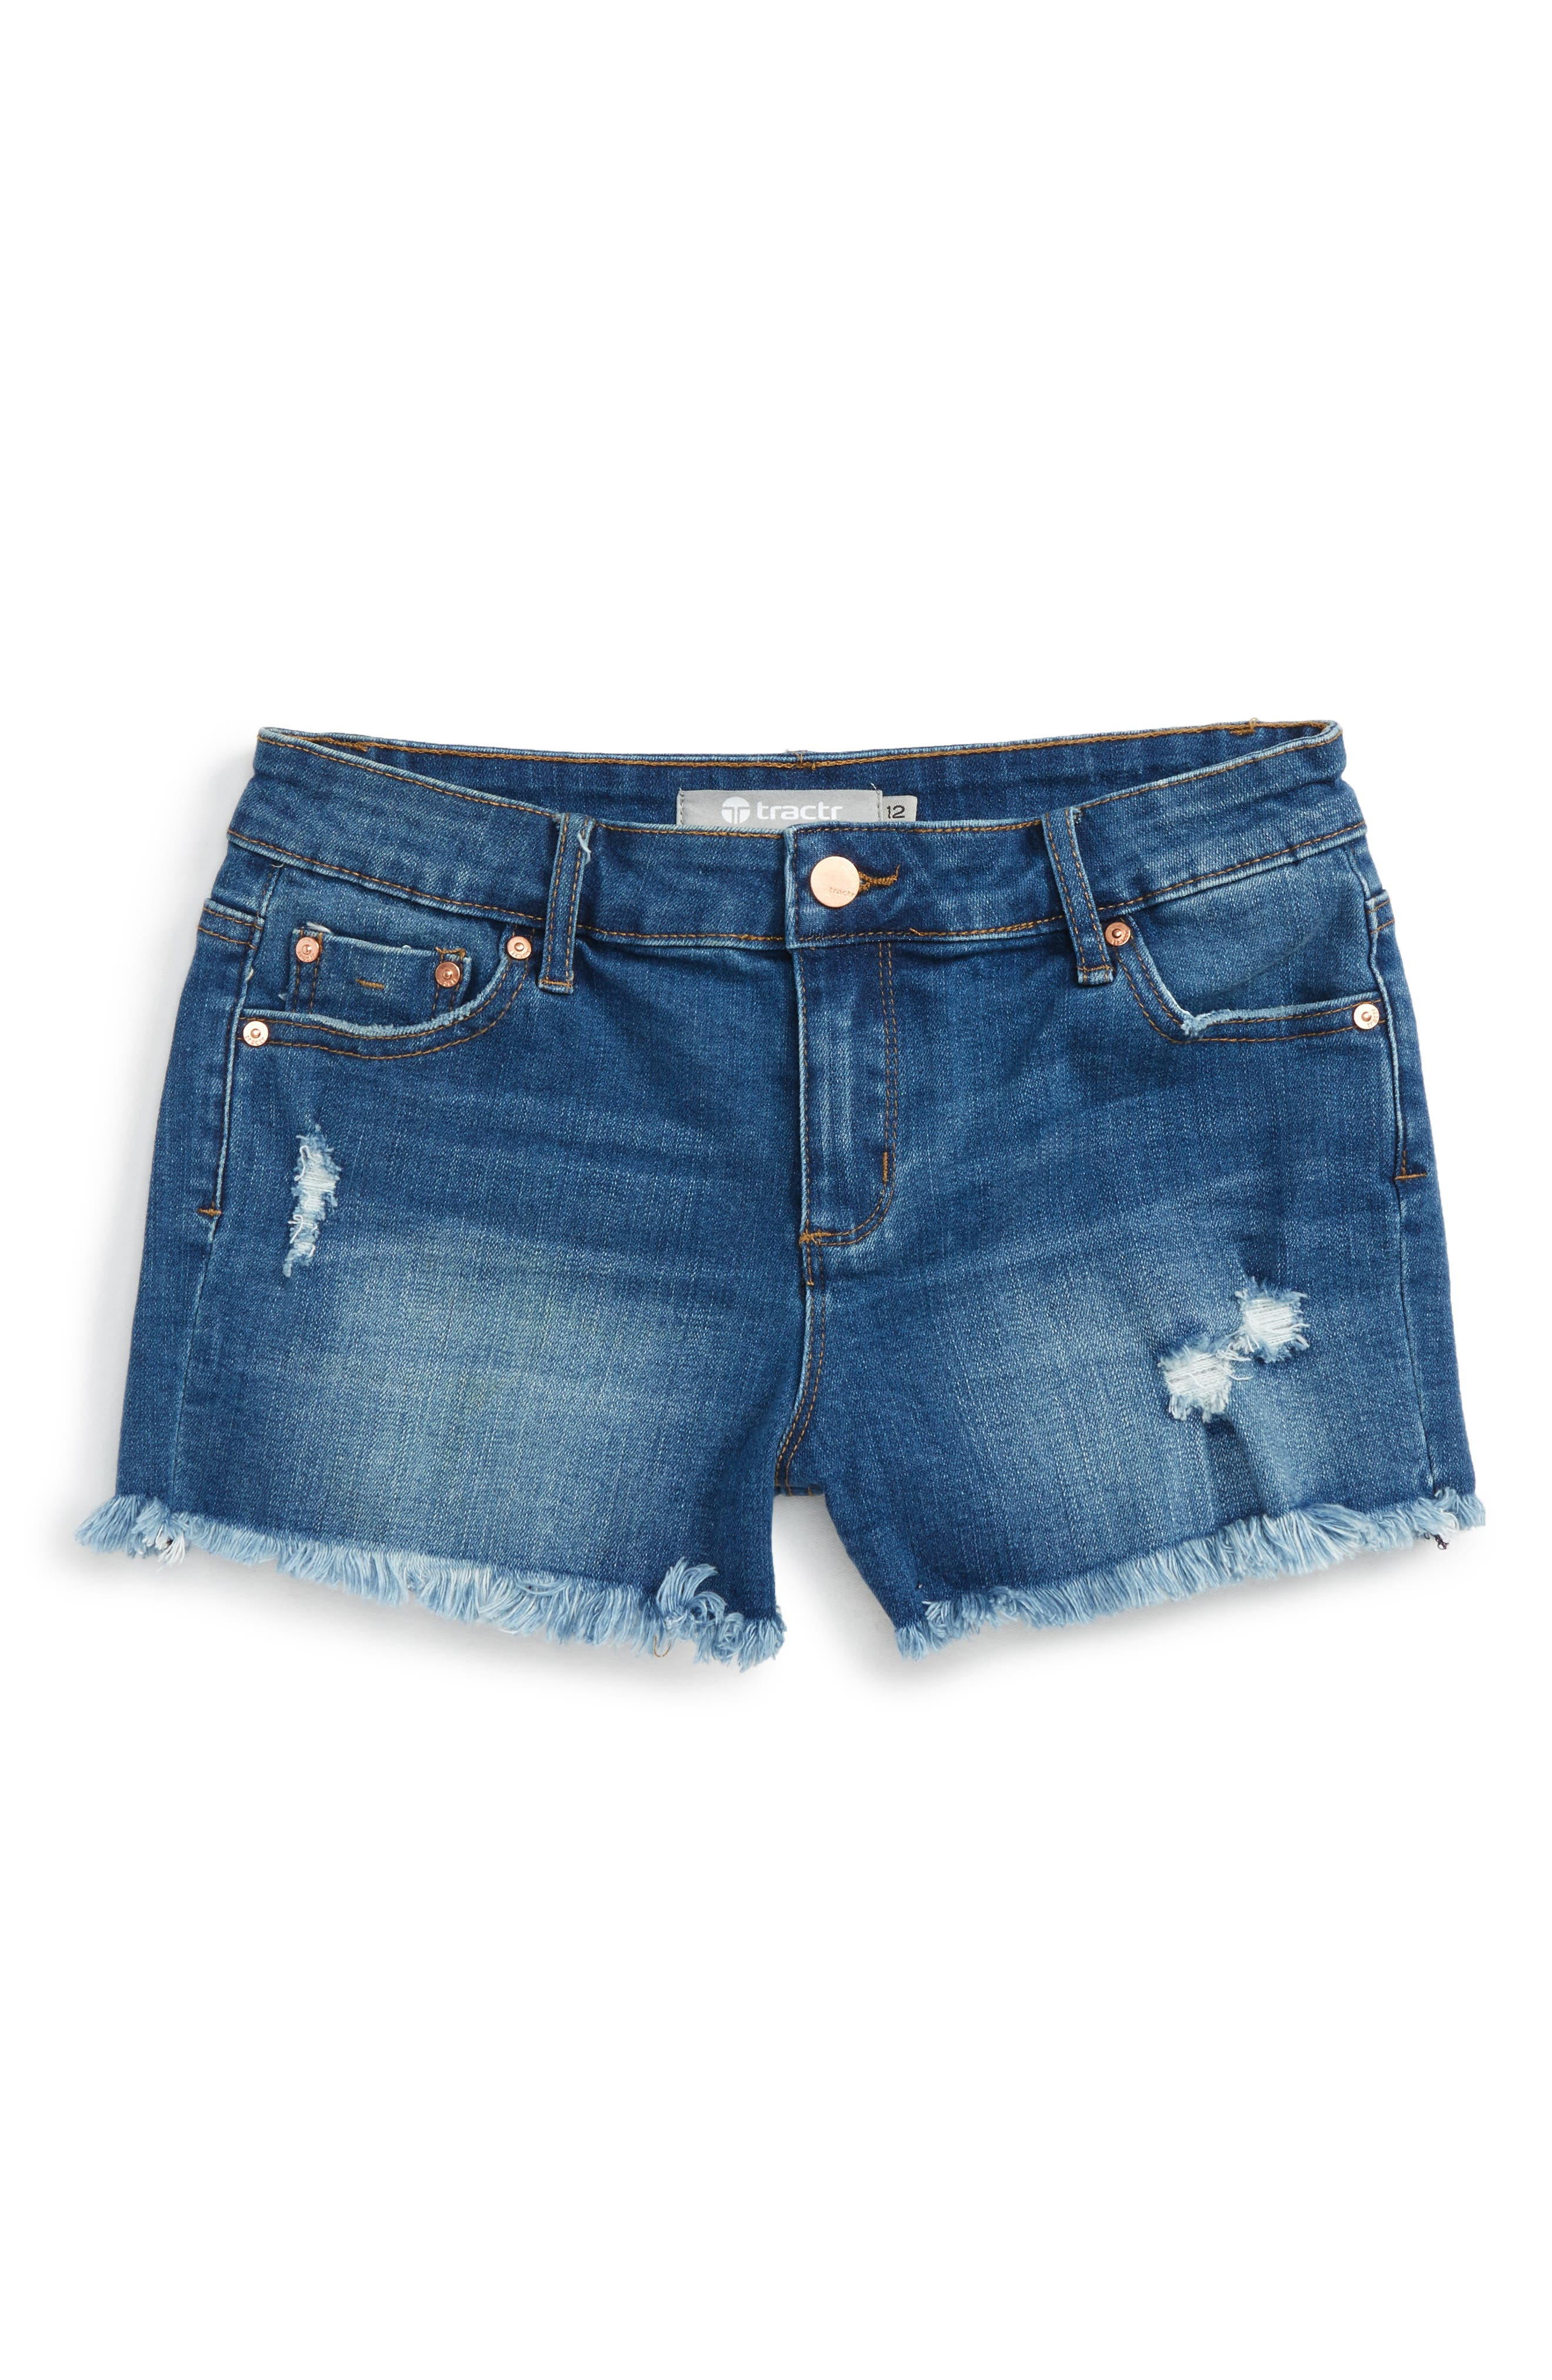 Distressed Cutoff Denim Shorts,                         Main,                         color, Dark Indigo